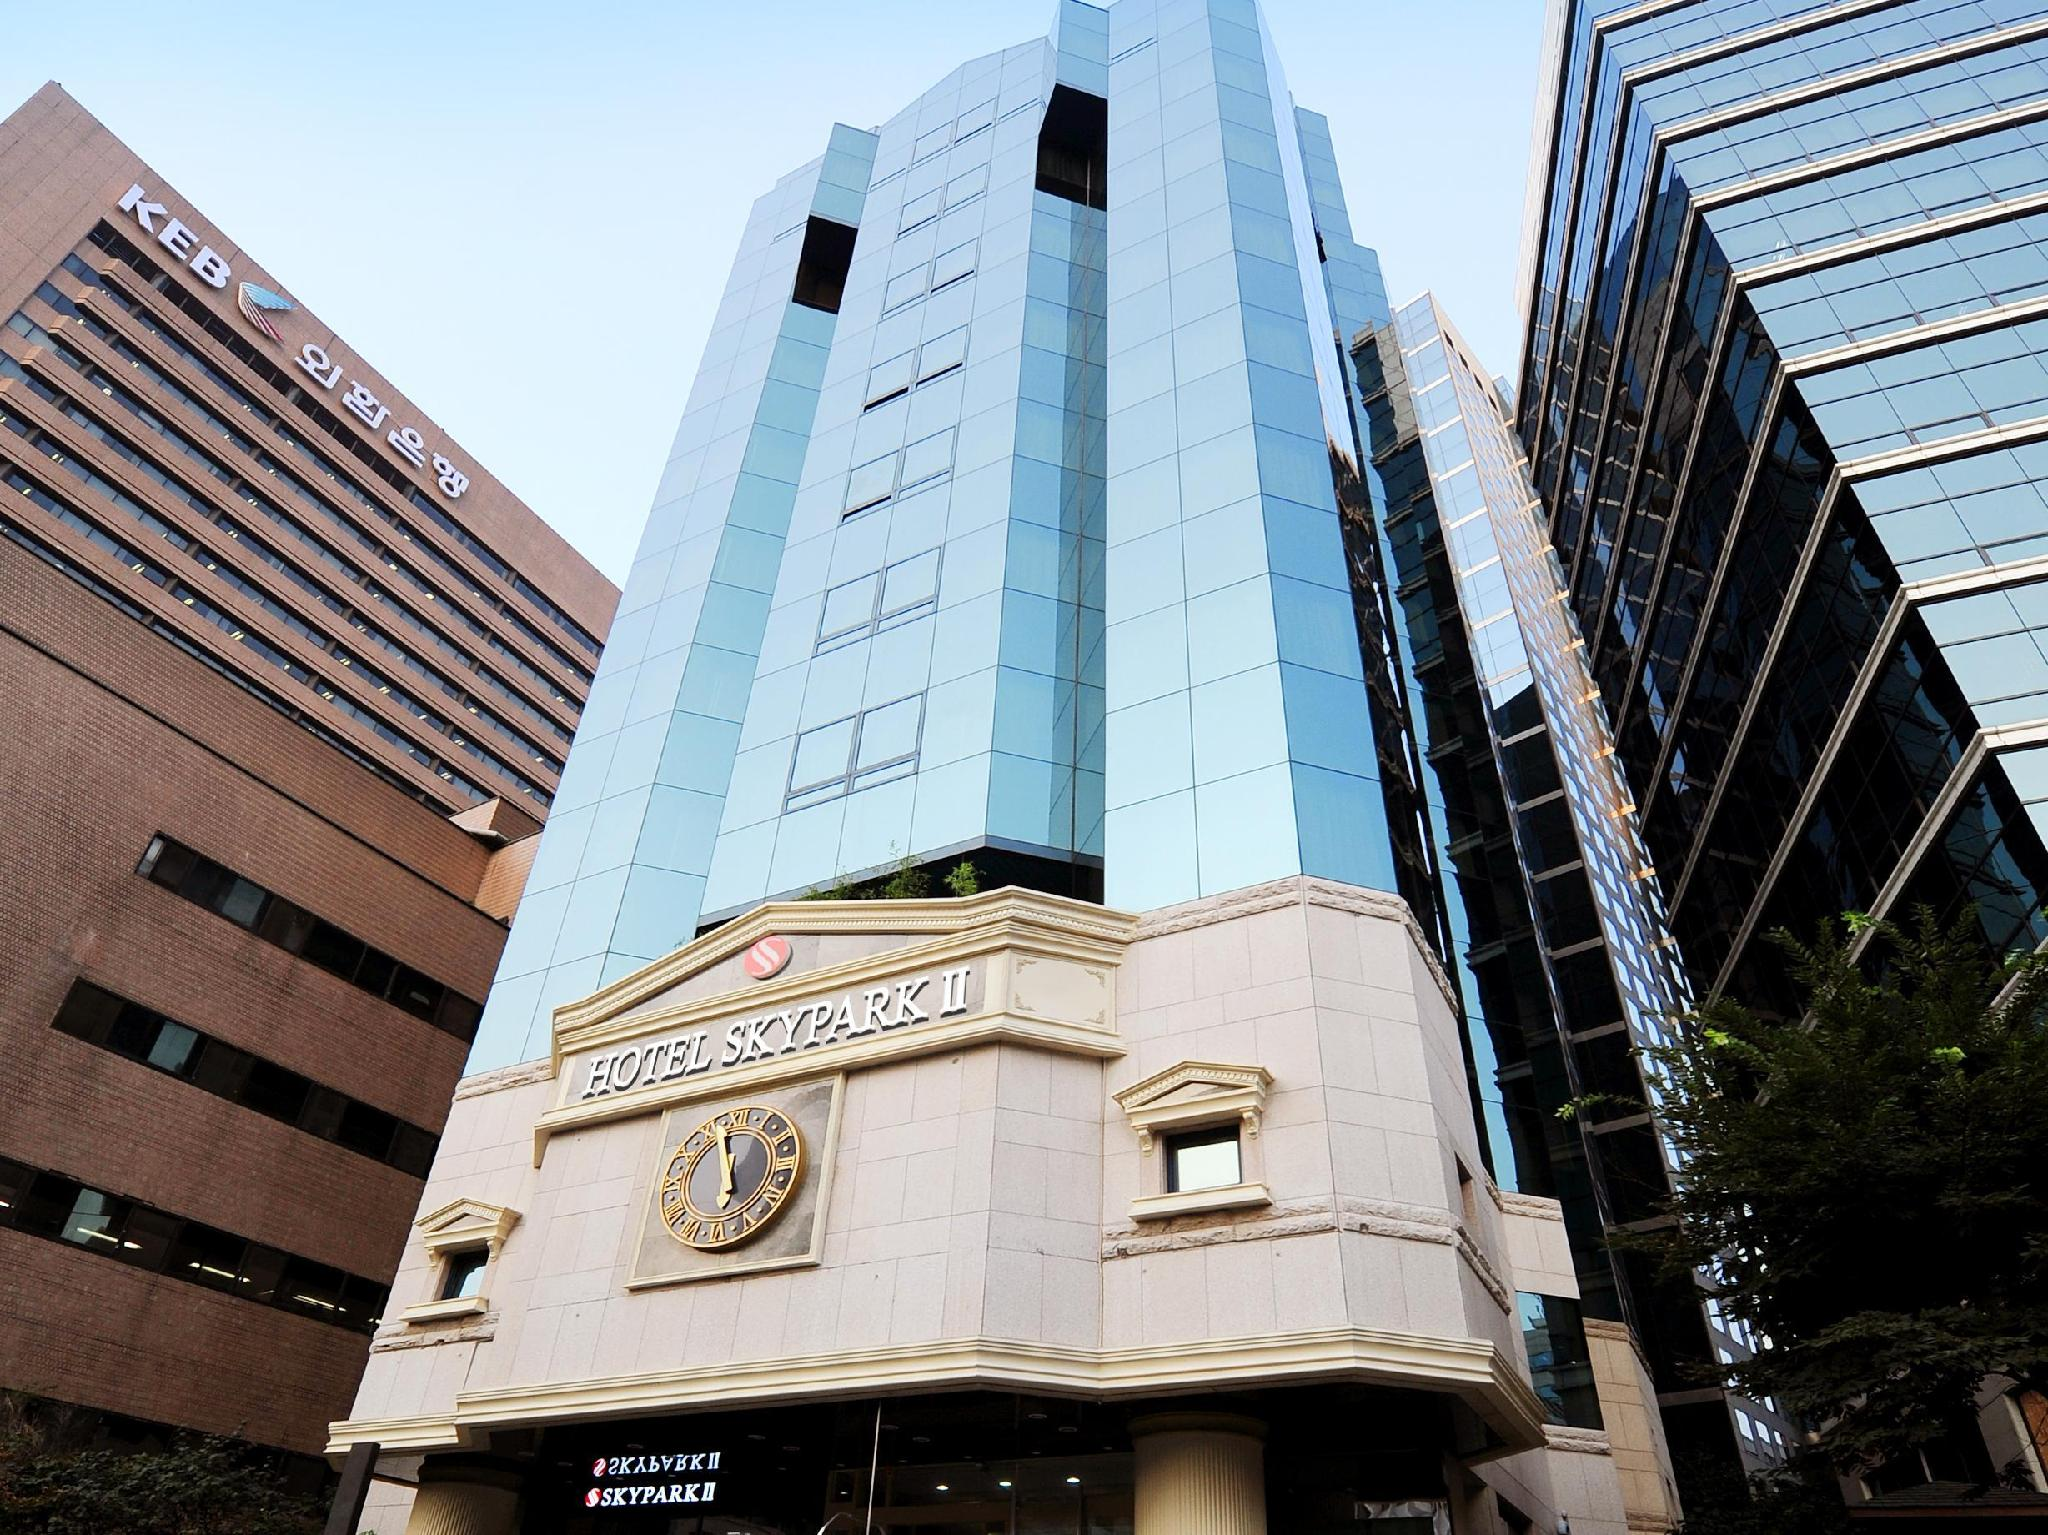 Hotel Skypark Myeongdong II - Hotels and Accommodation in South Korea, Asia